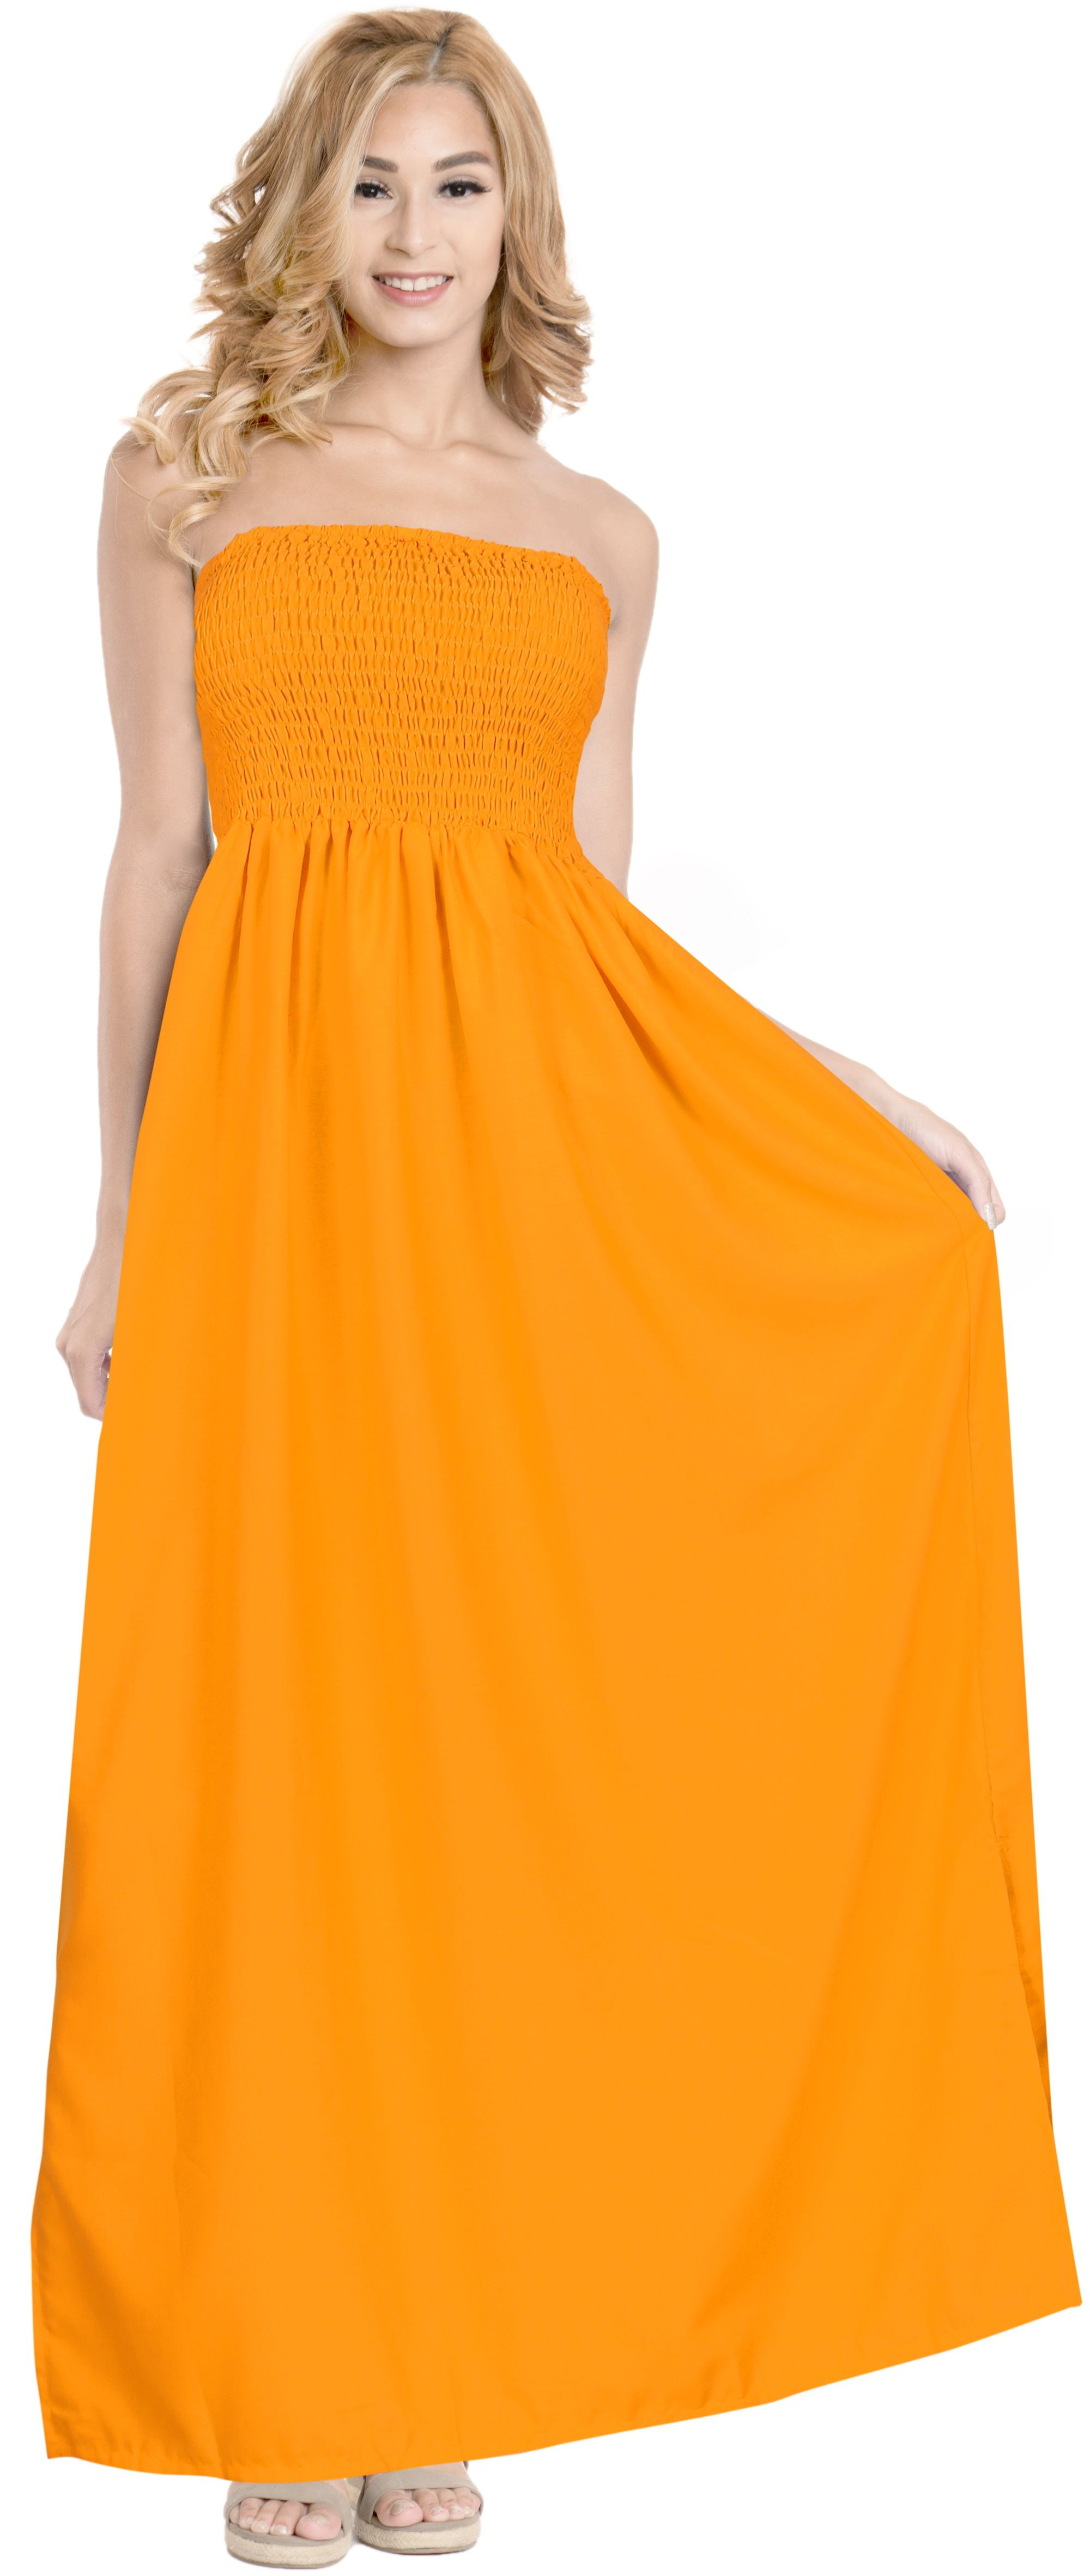 93522fedee 20 Solid Colors Sundress Casual Dress Maxi Long Full Length Cover up ...